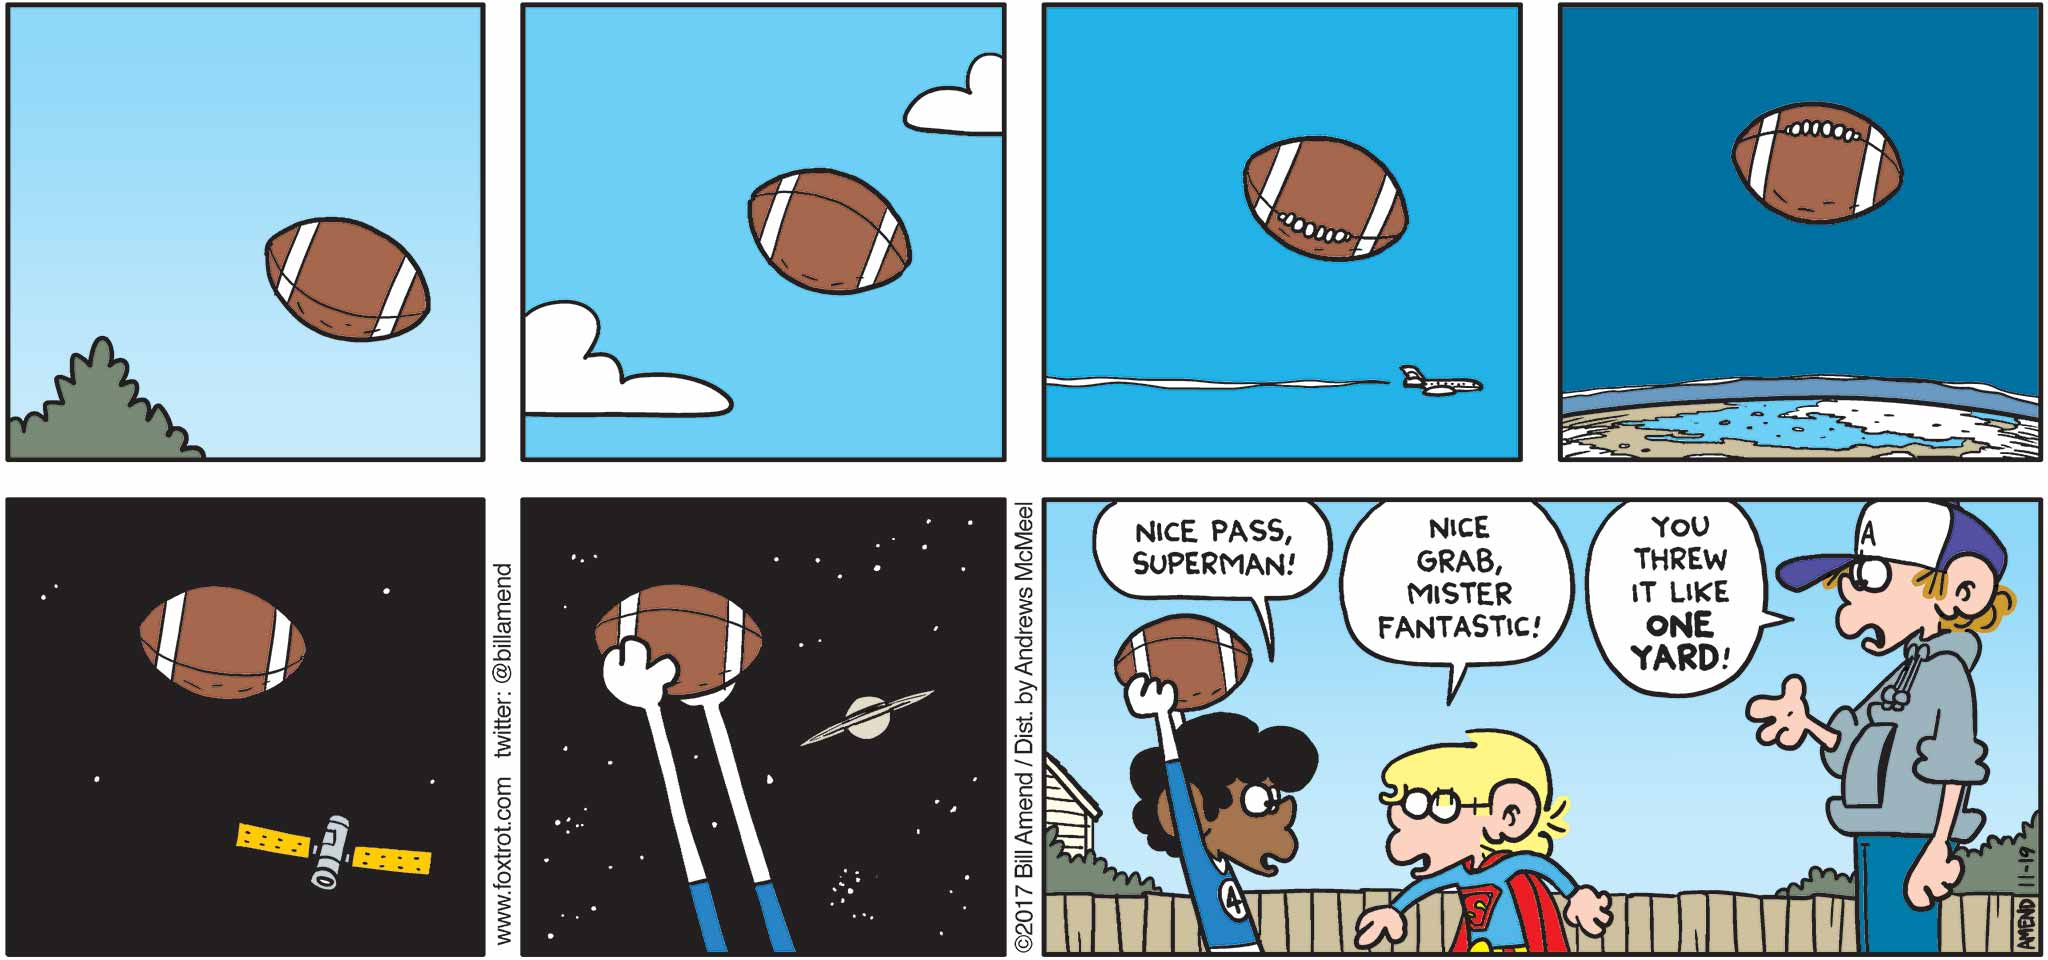 "FoxTrot by Bill Amend - ""Fantasticy Football"" published November 19, 2017 - Marcus says: Nice pass, Superman! Jason says: Nice grab, Mister Fantastic! Peter says: You threw it like ONE YARD!"